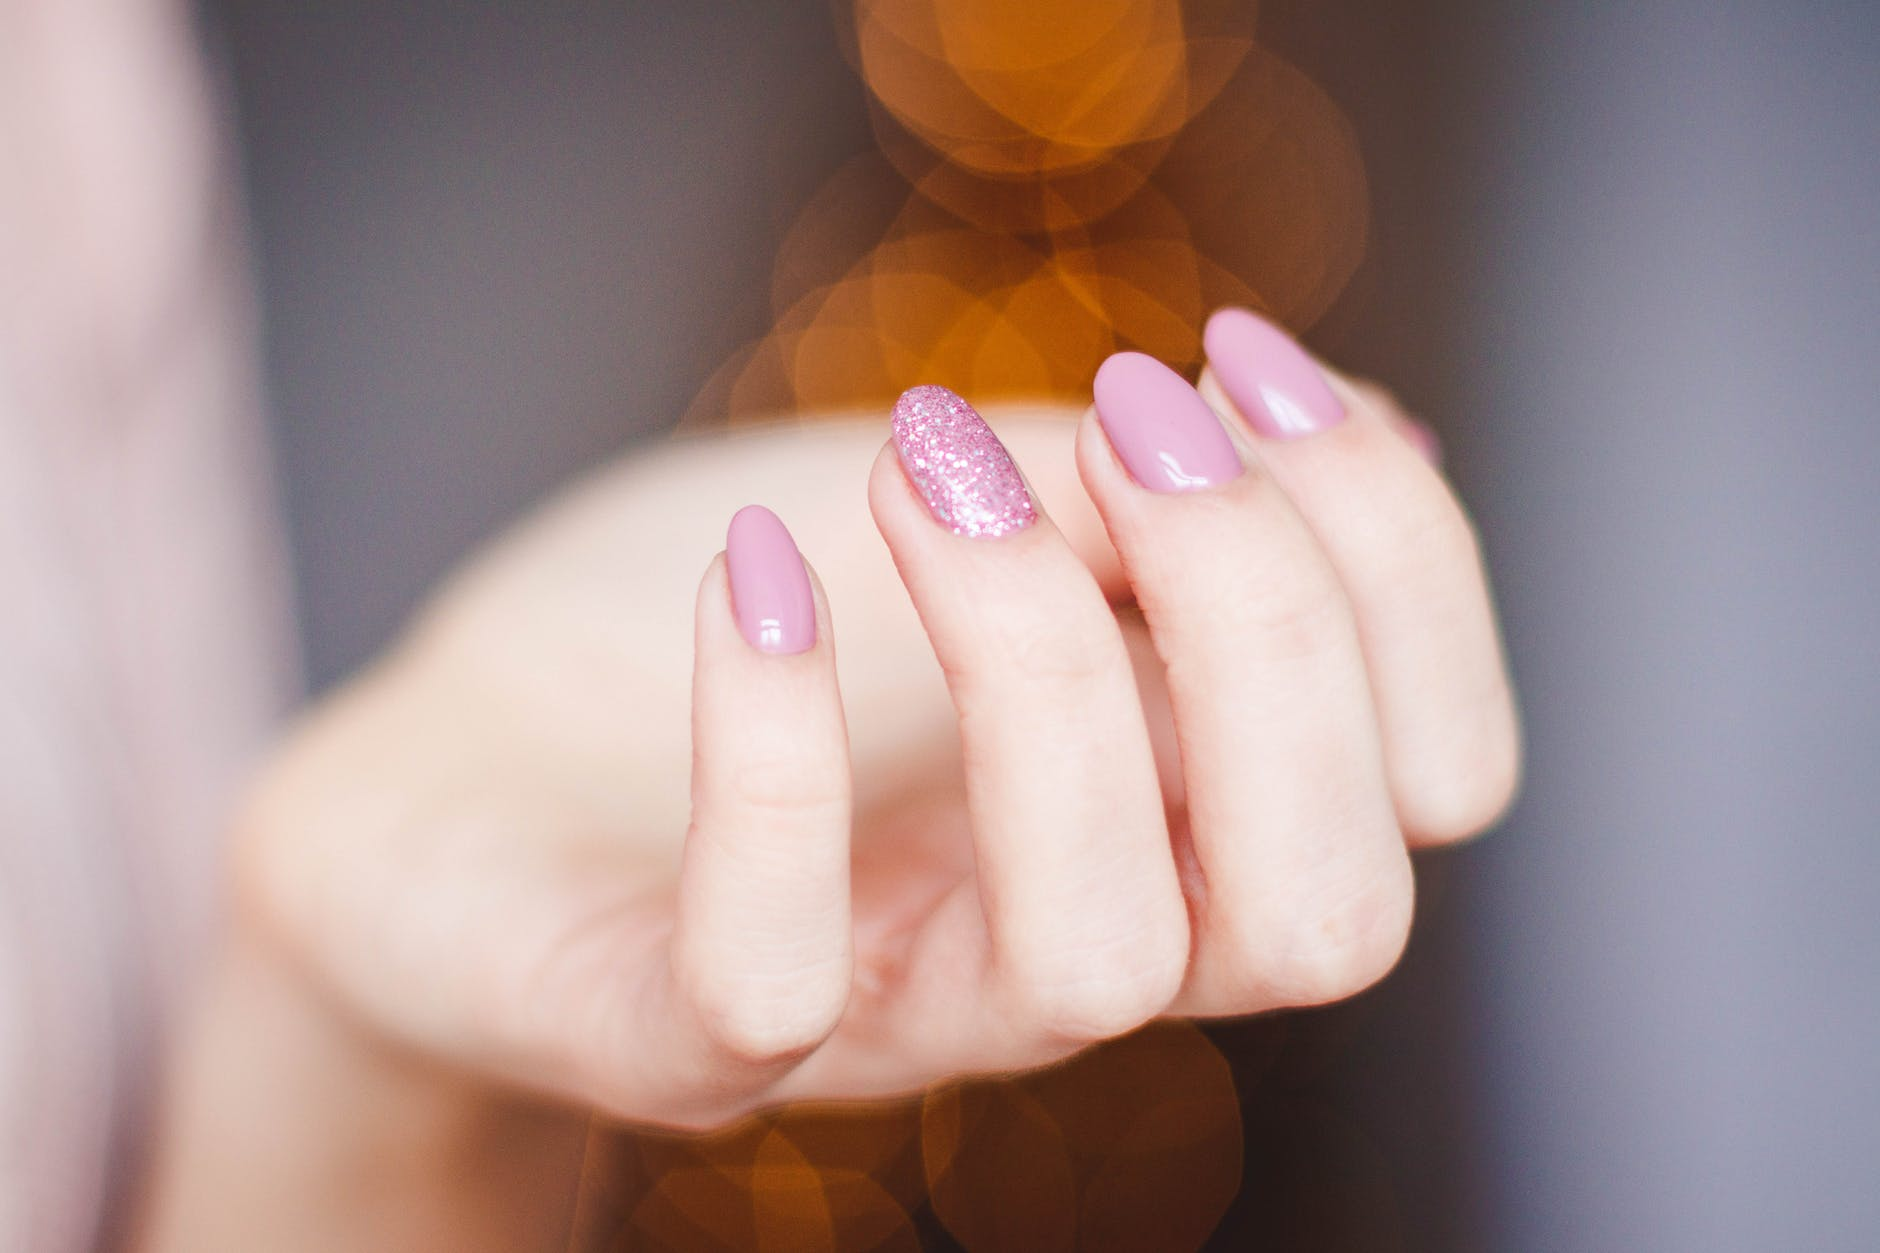 Spring Mist Spa Tips on How to Avoid Bad Nail Care